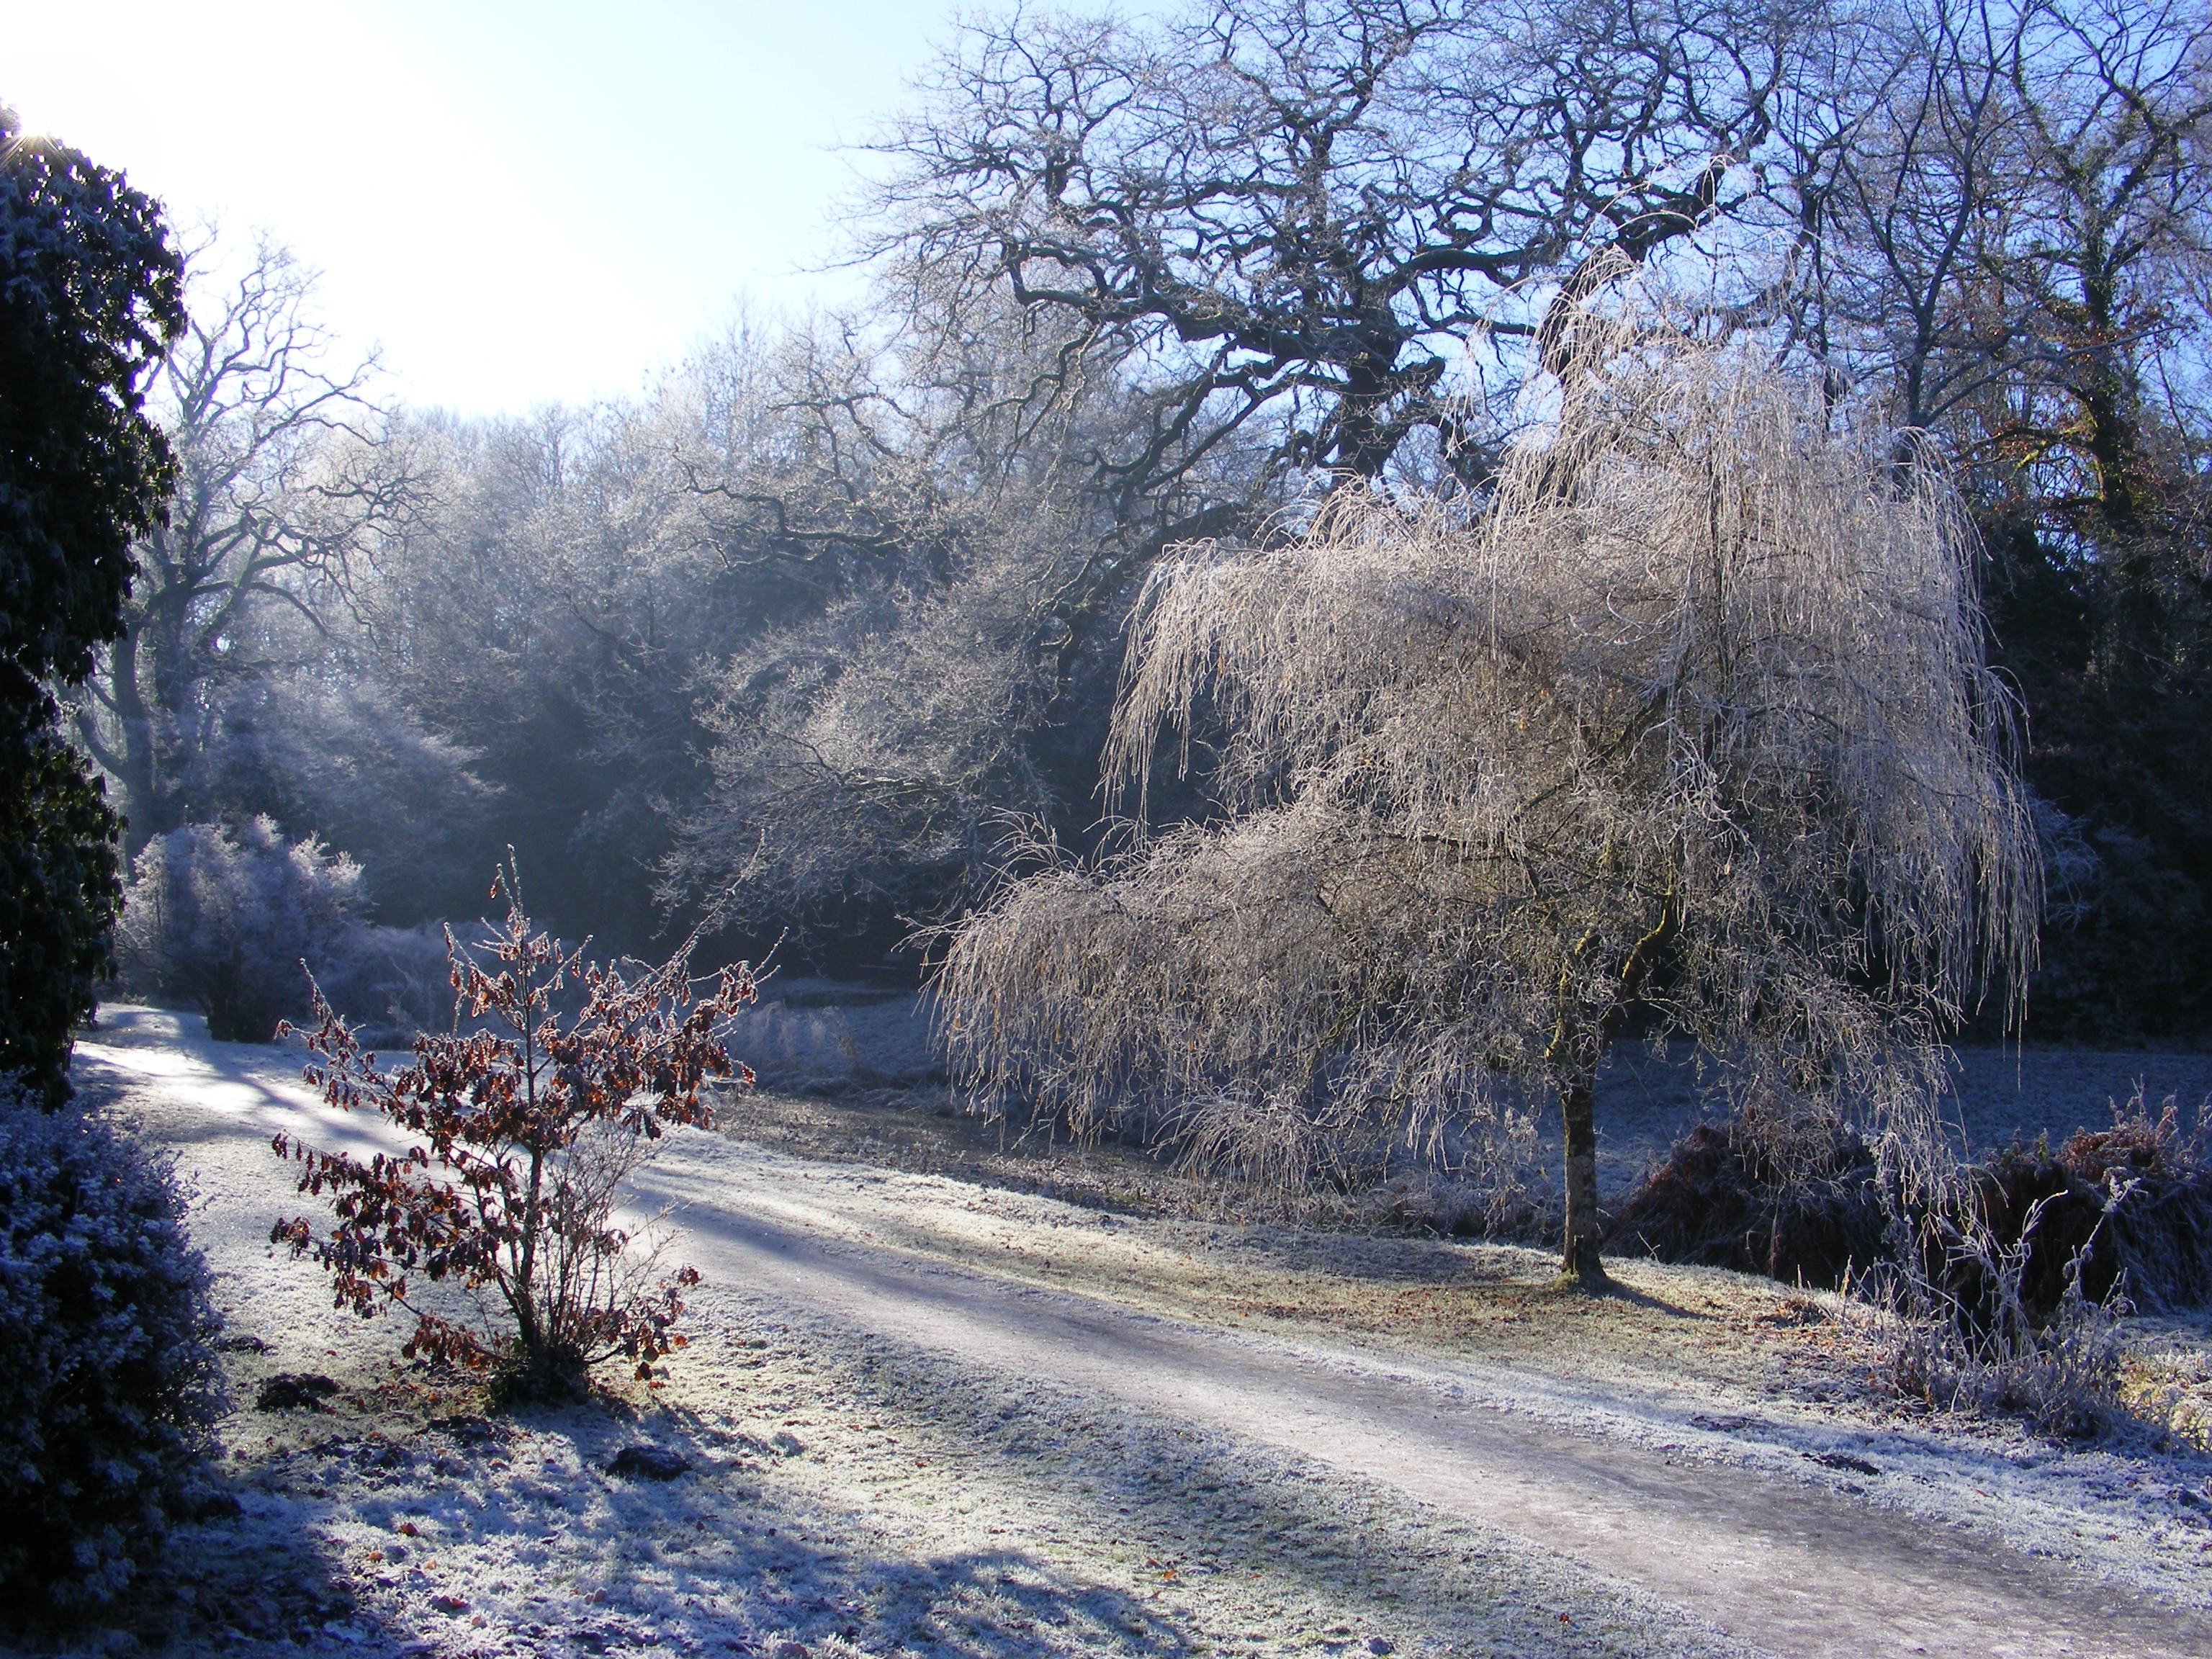 file bryngarw country park japanese garden in frost. Black Bedroom Furniture Sets. Home Design Ideas